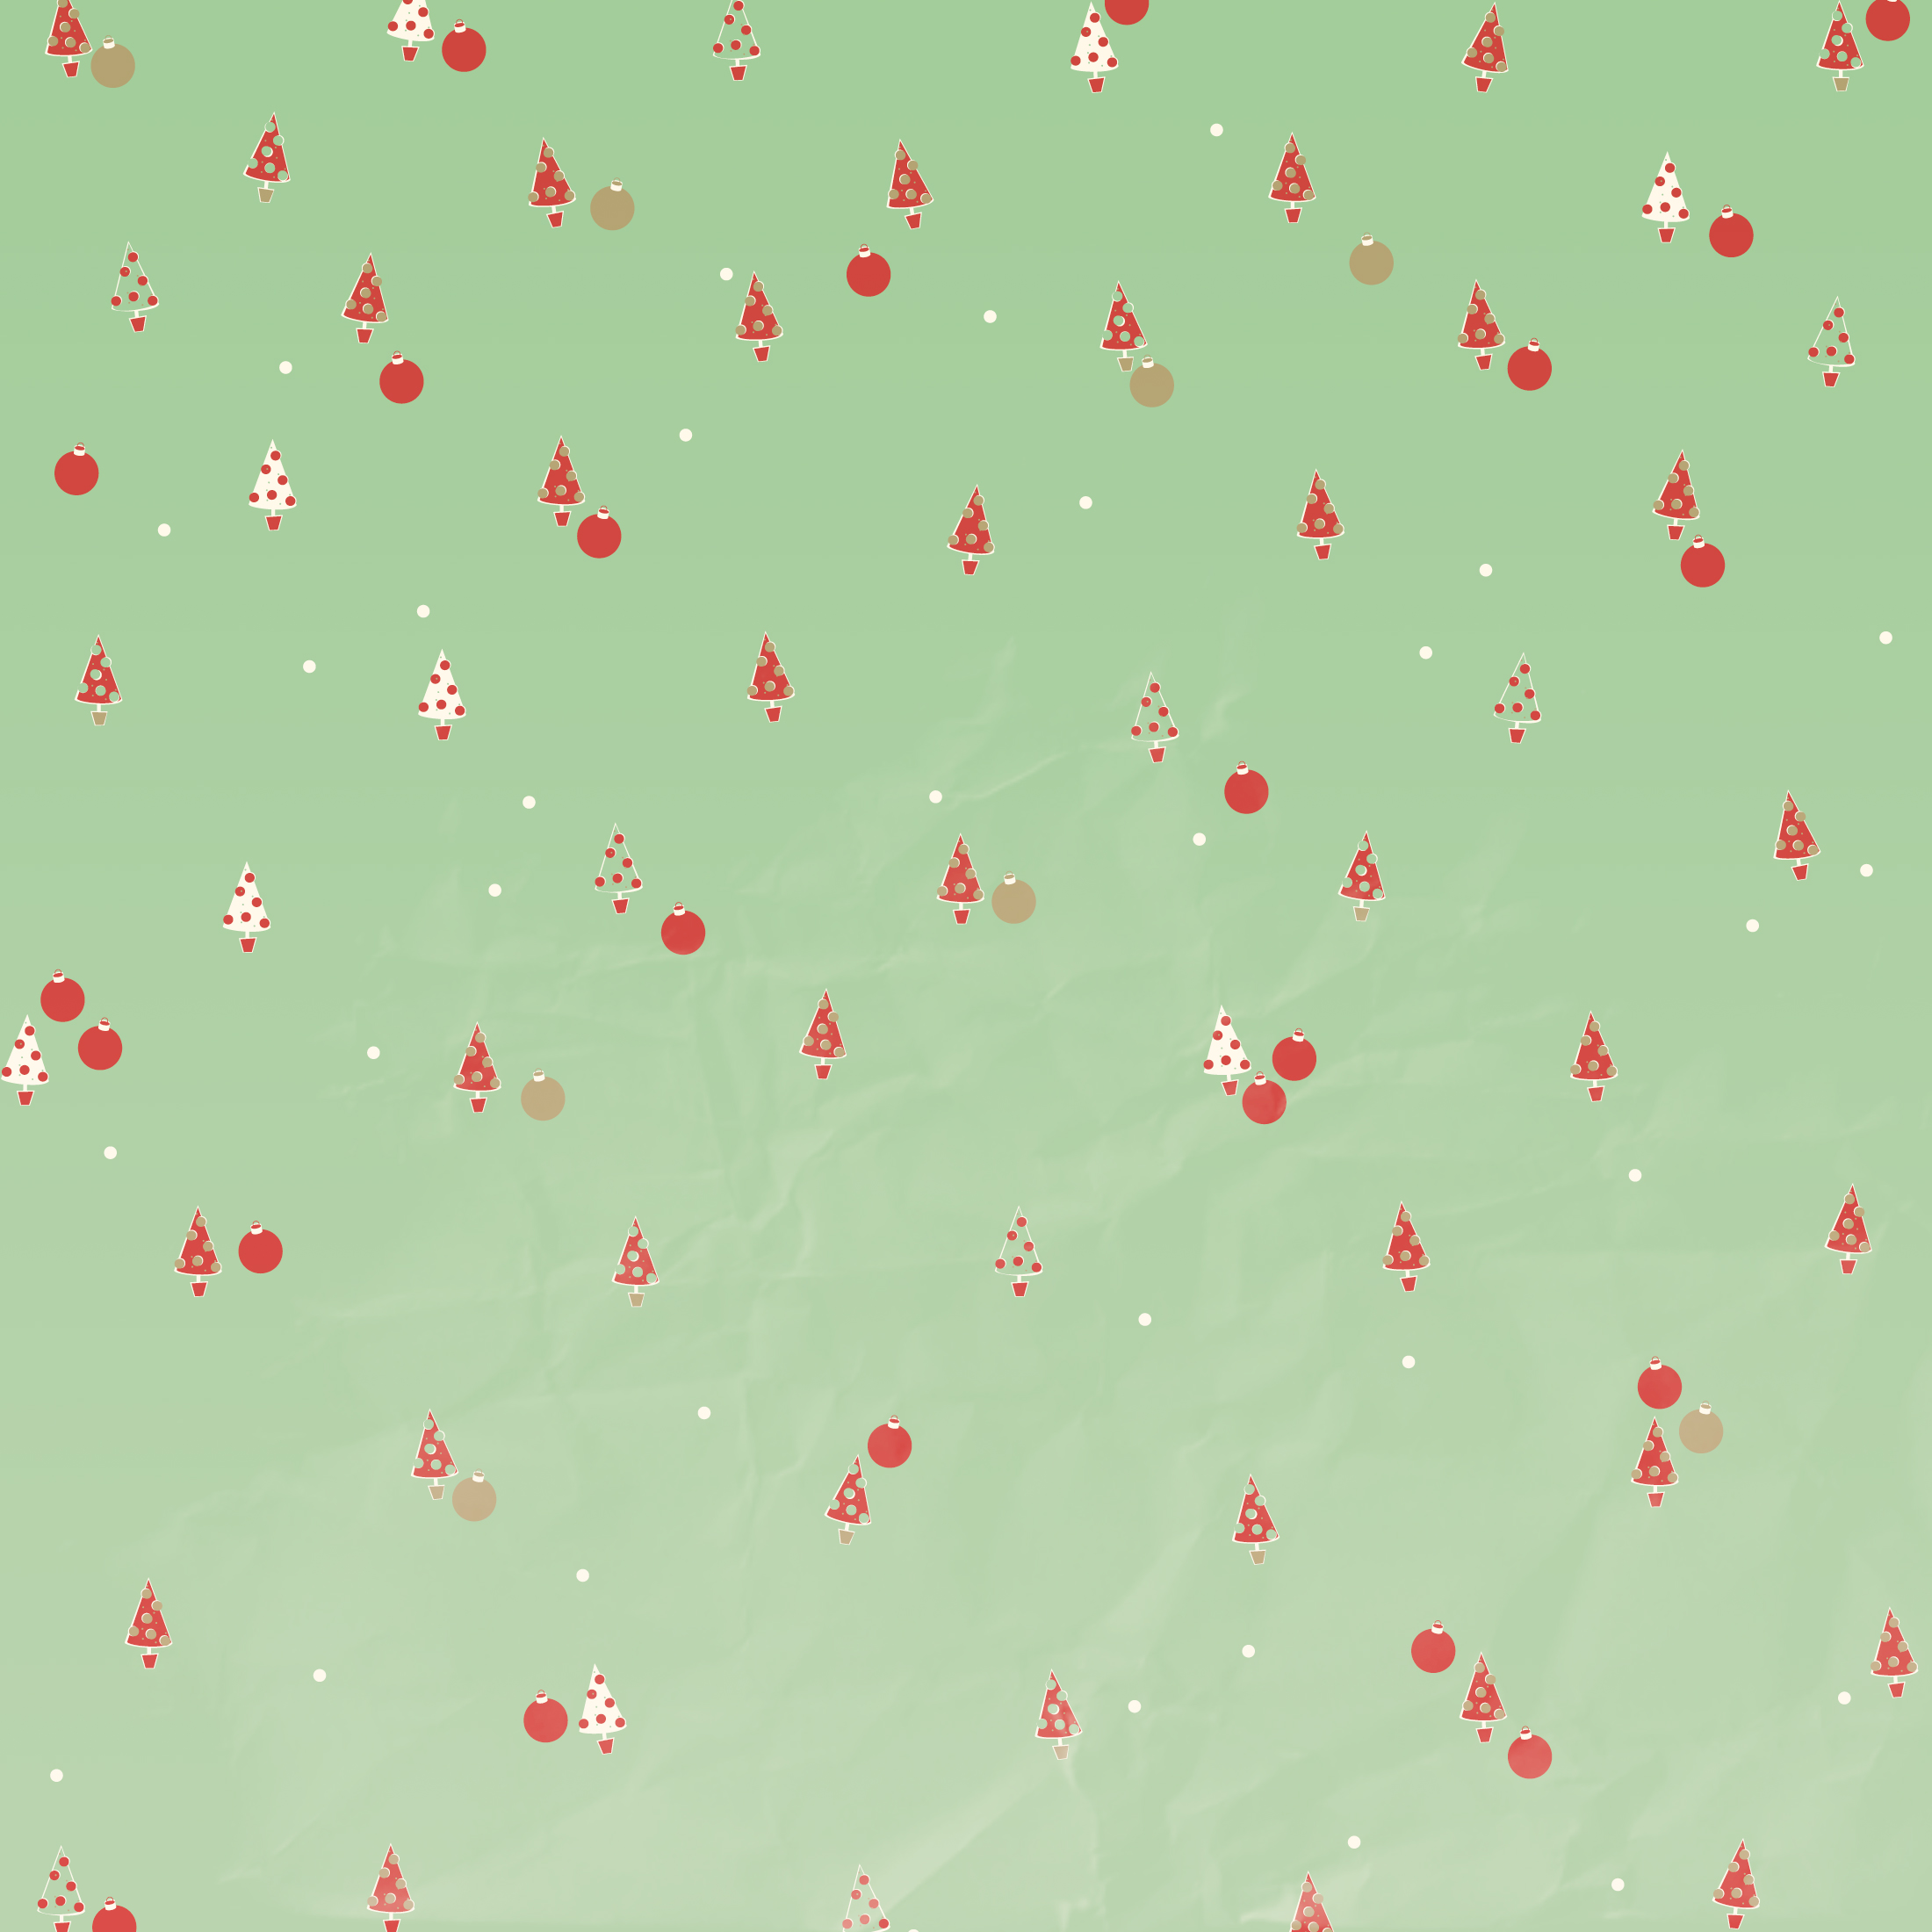 Cute Backgrounds: Cute Christmas Backgrounds